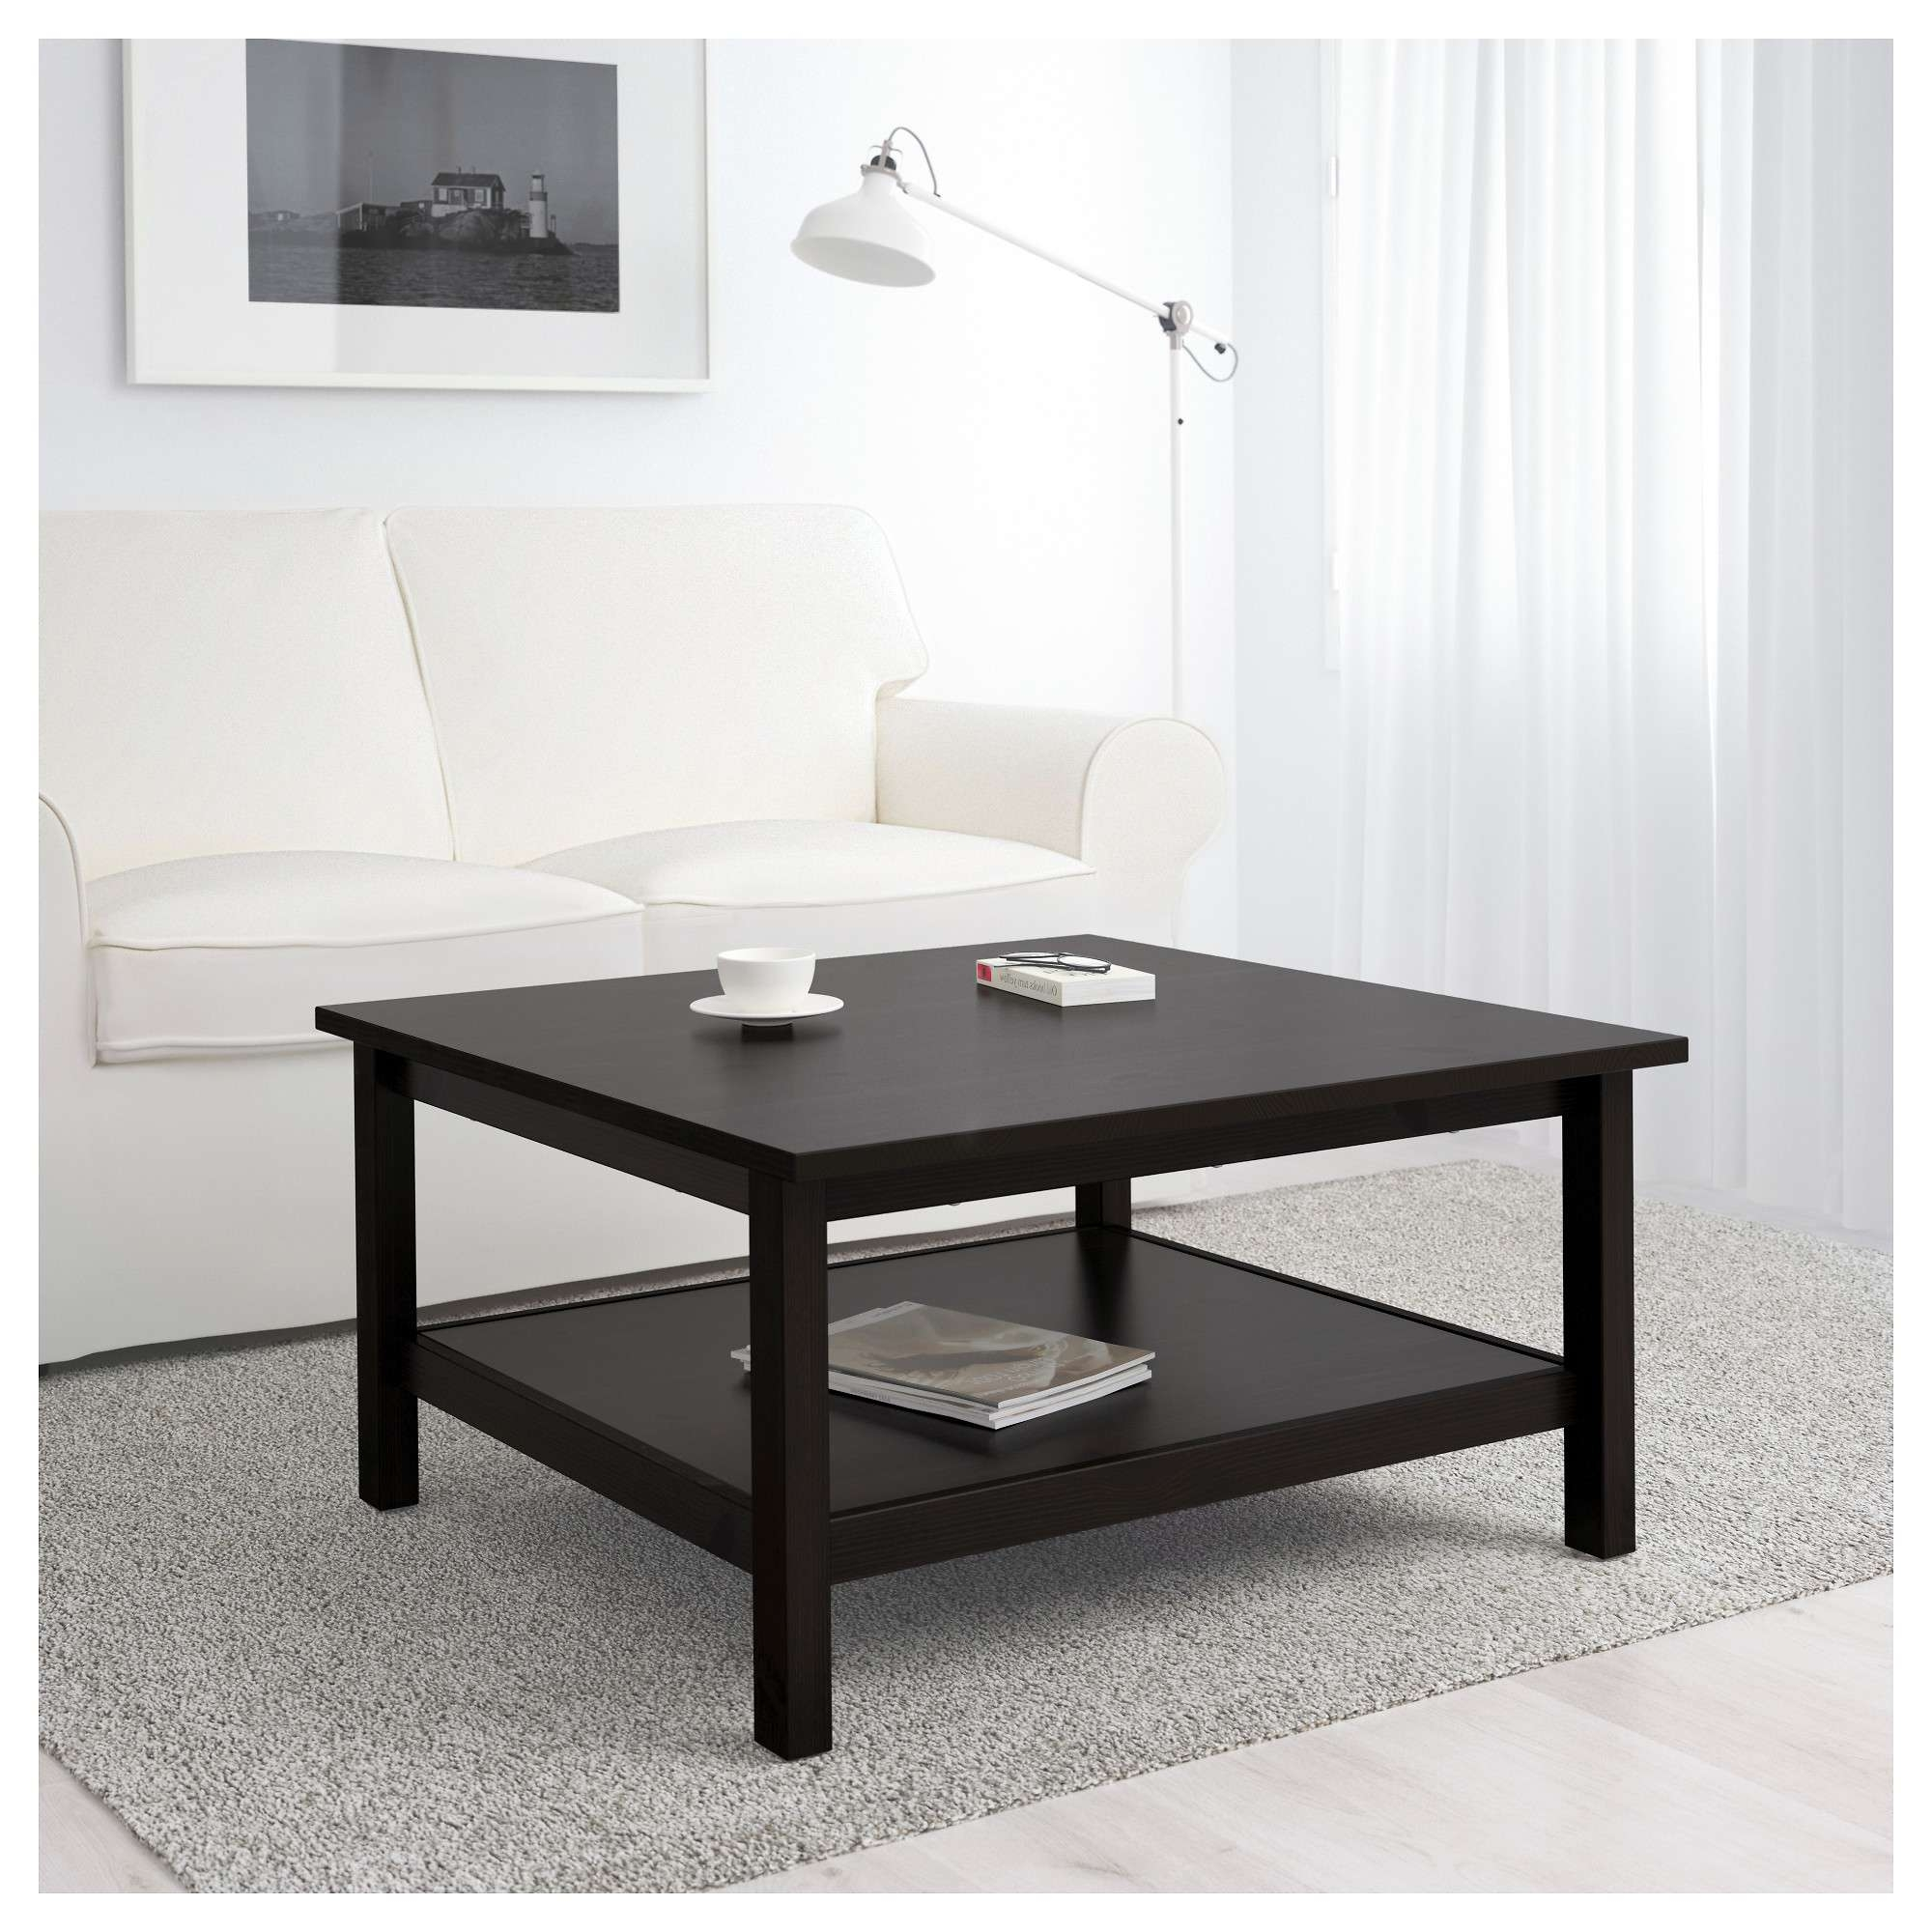 Well Liked Black Wood Coffee Tables Intended For Hemnes Coffee Table – Black Brown – Ikea (View 18 of 20)